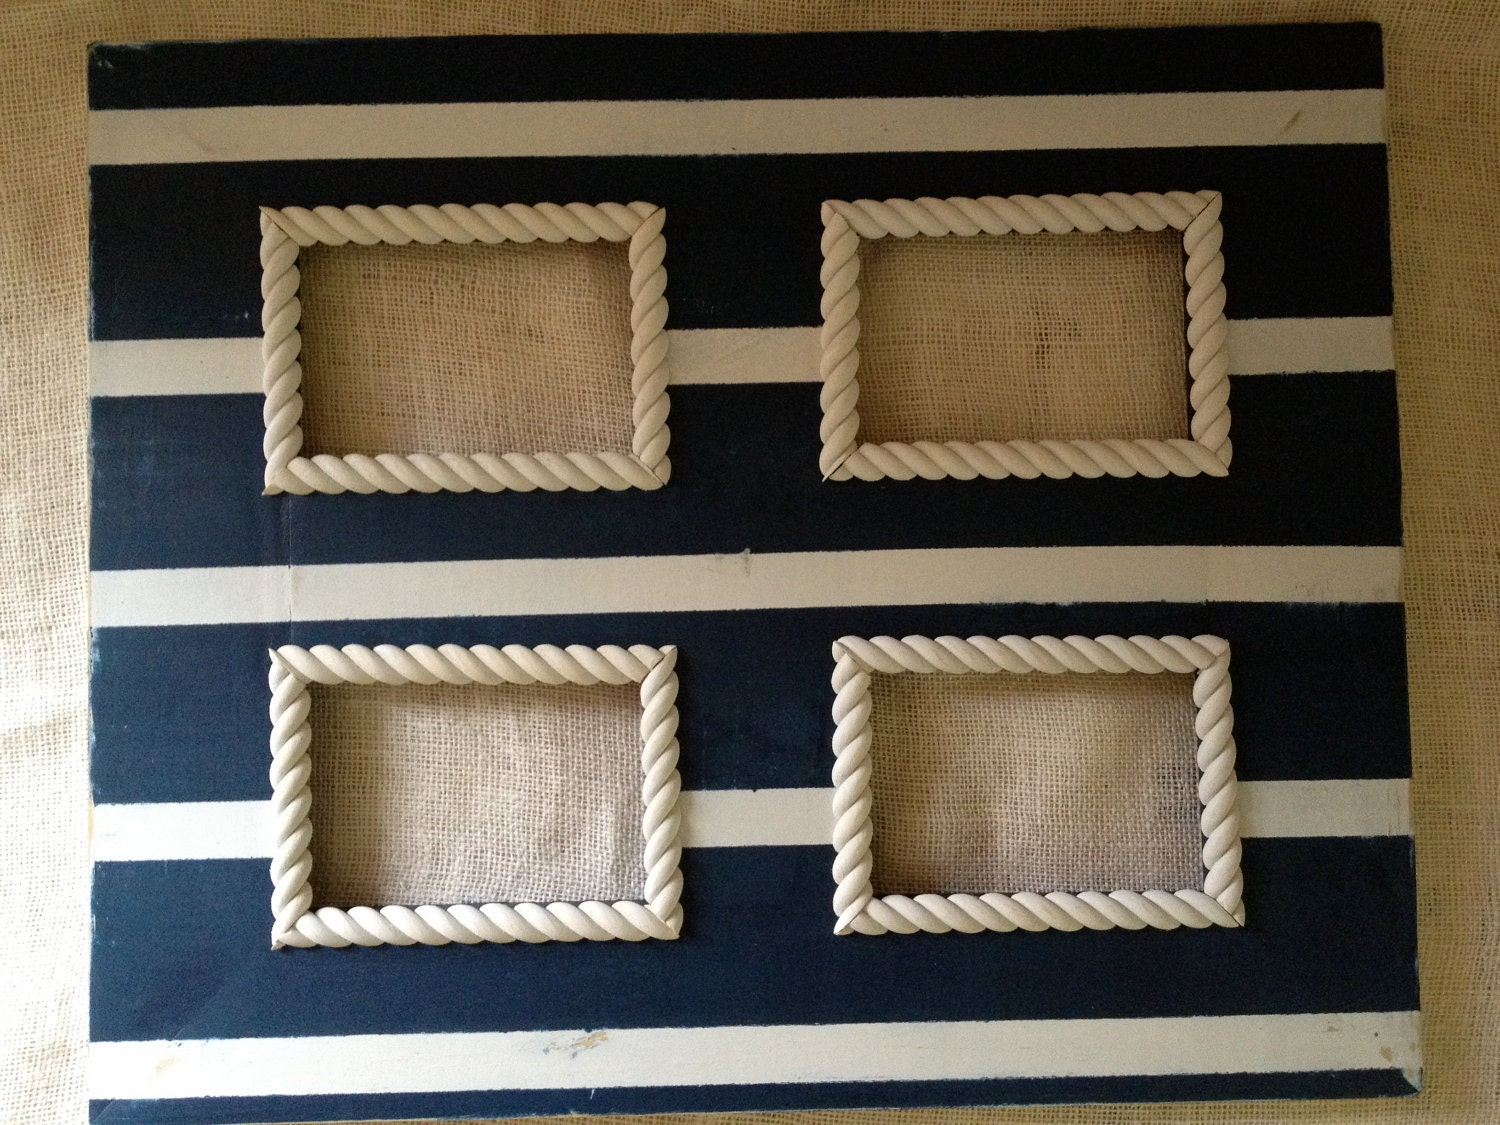 multiple opening distressed collage picture frame nautical stripes navy blue and cream 5x7